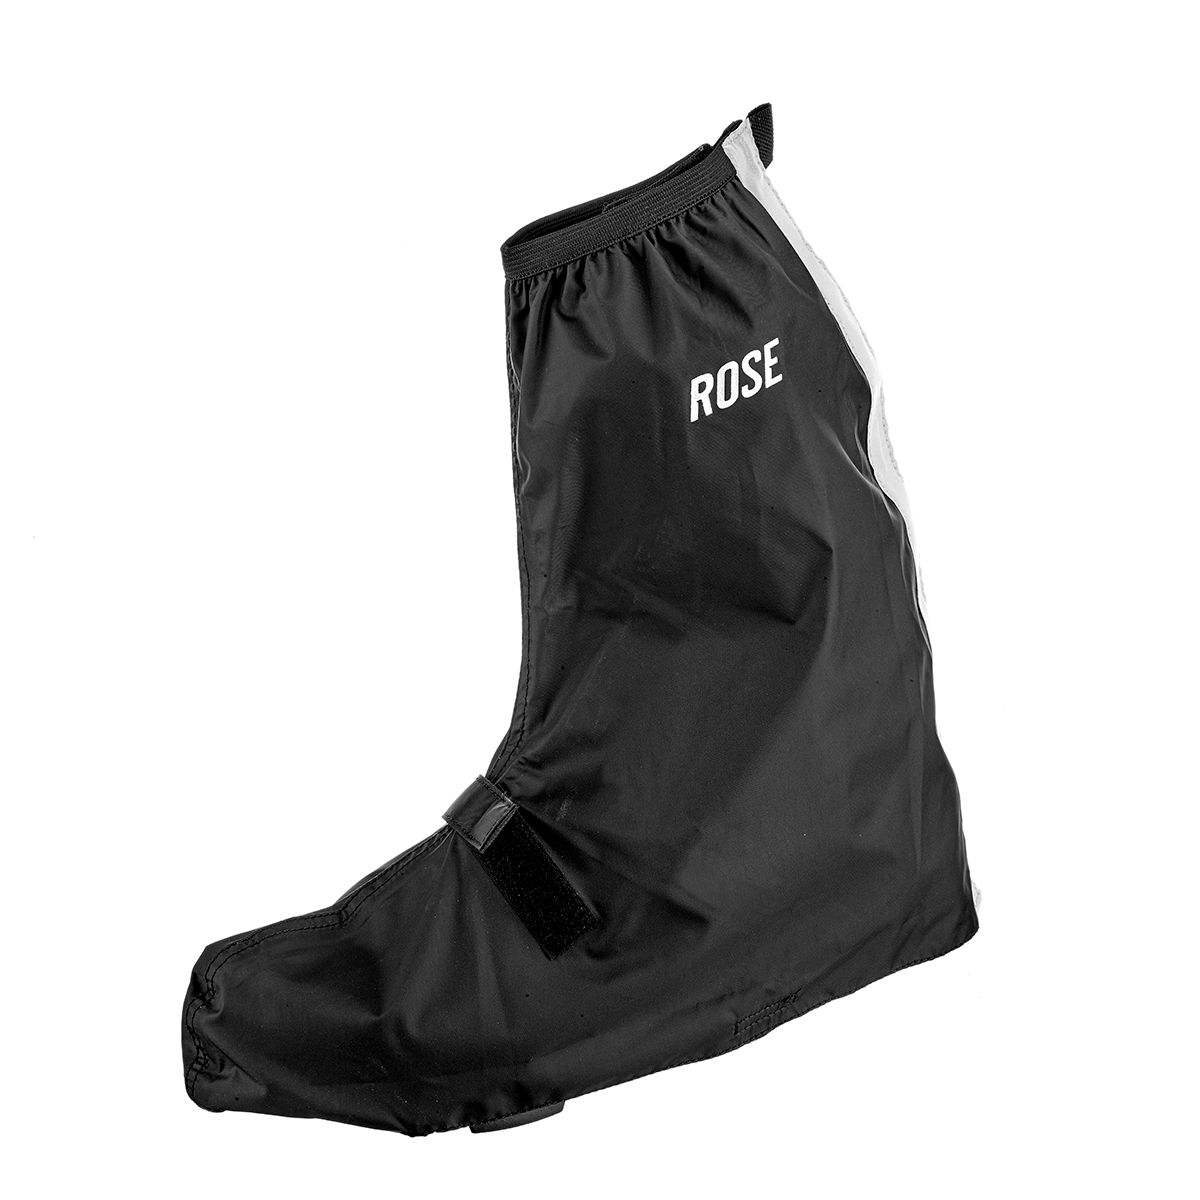 ROSE RAIN V overshoes | shoecovers_clothes